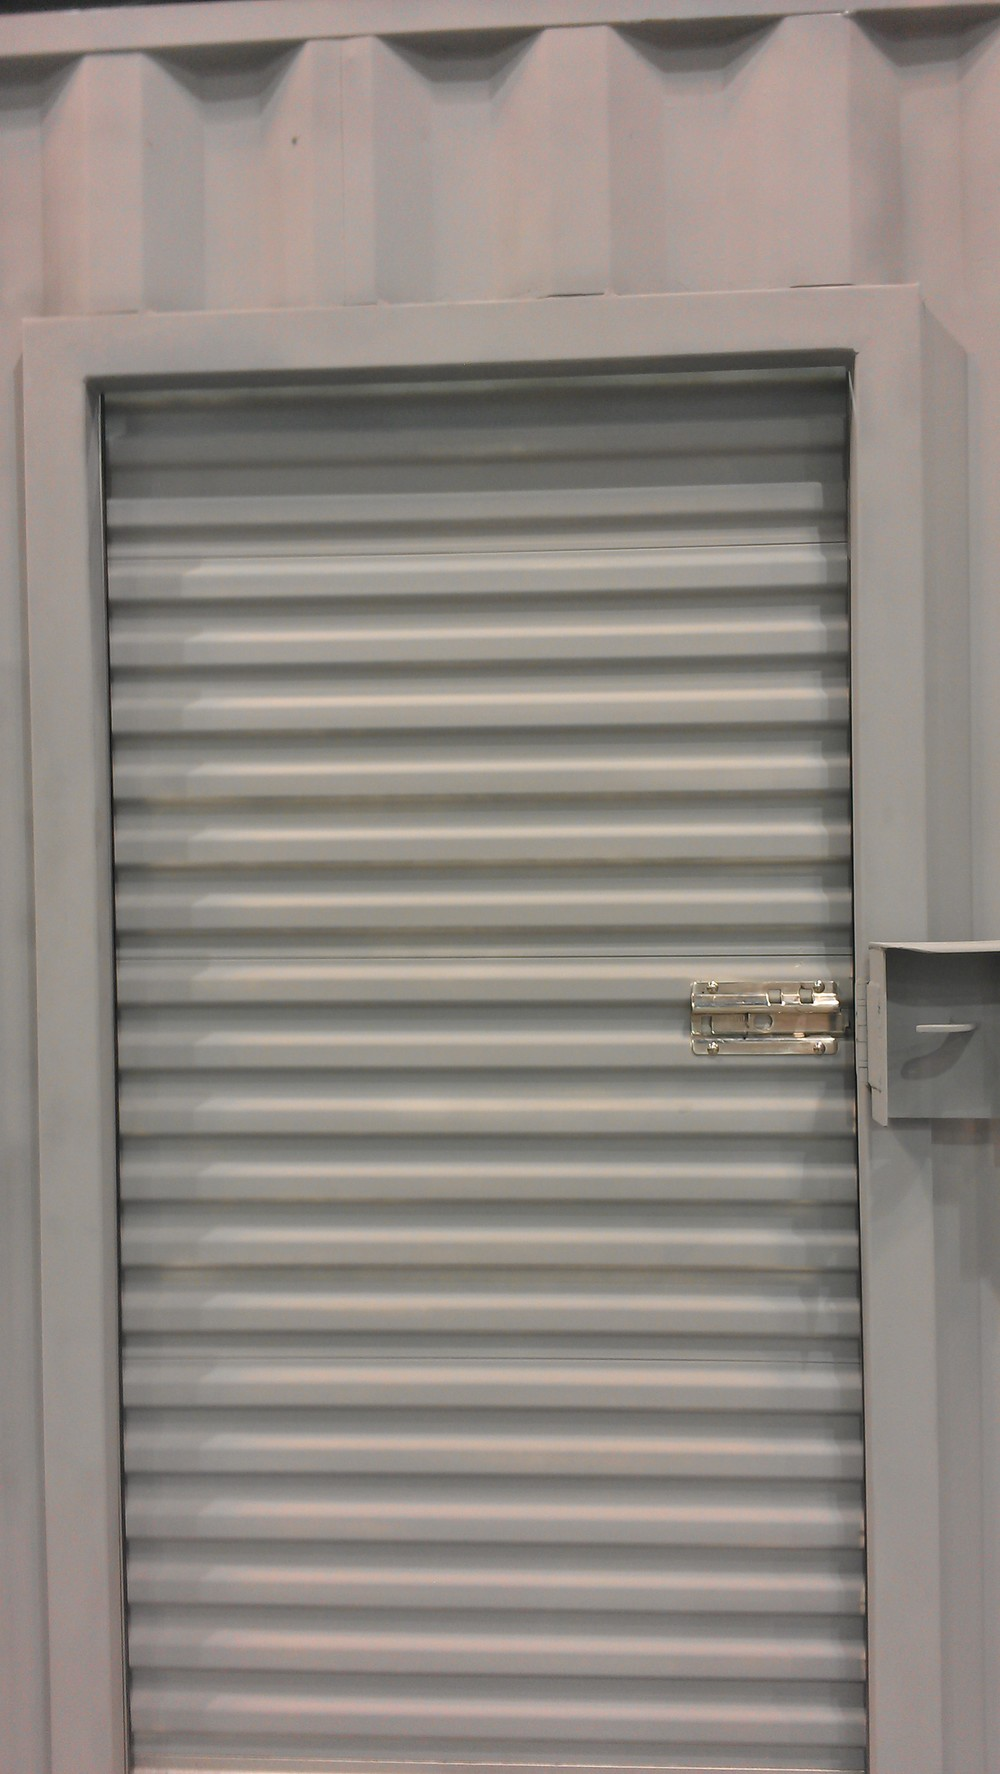 Narrow roll-up door